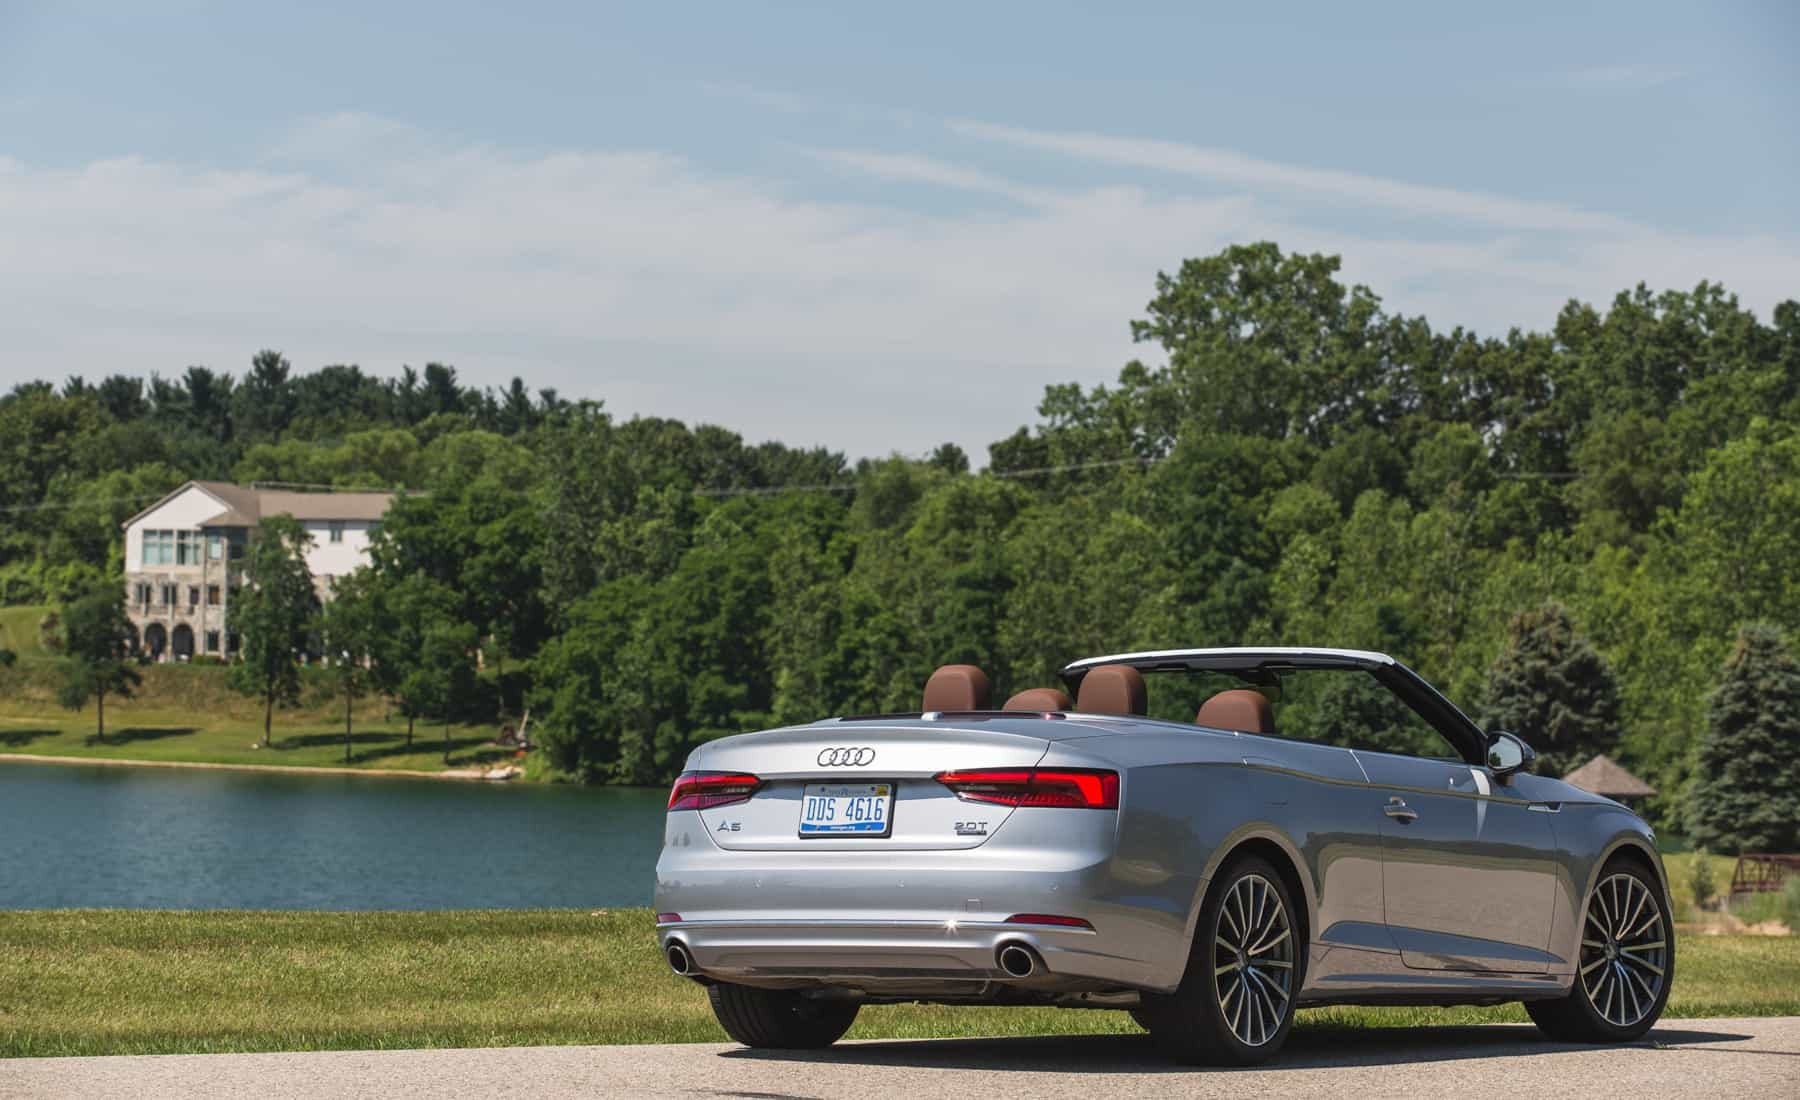 2018 Audi A5 Cabriolet Exterior Roof Open Rear And Side (Photo 7 of 45)